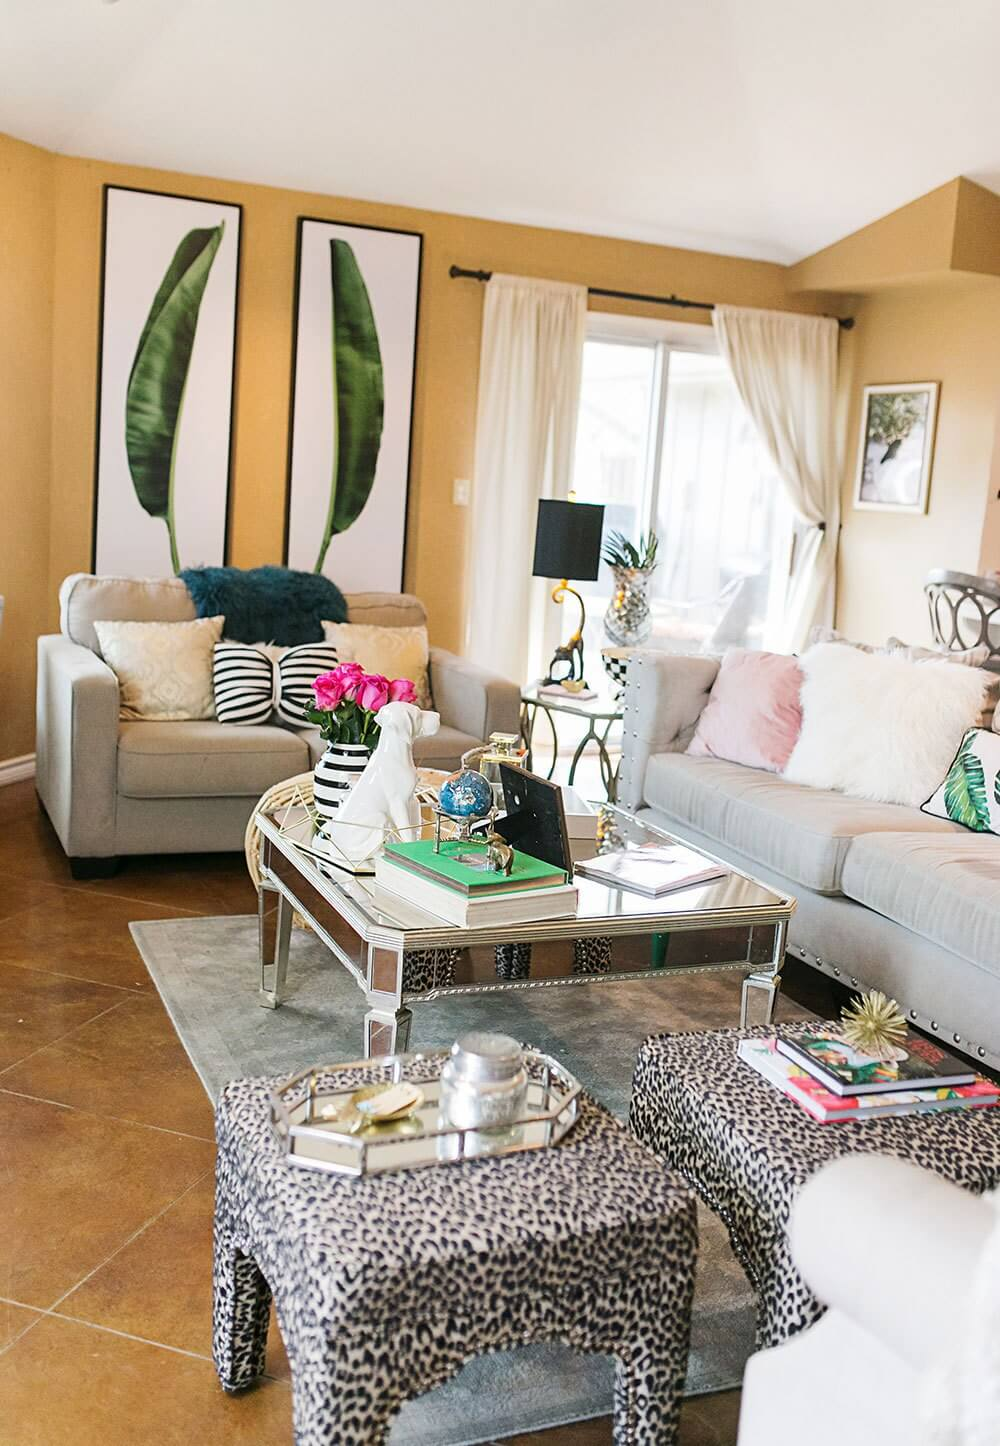 Inviting Living Room with Animal Print Accents